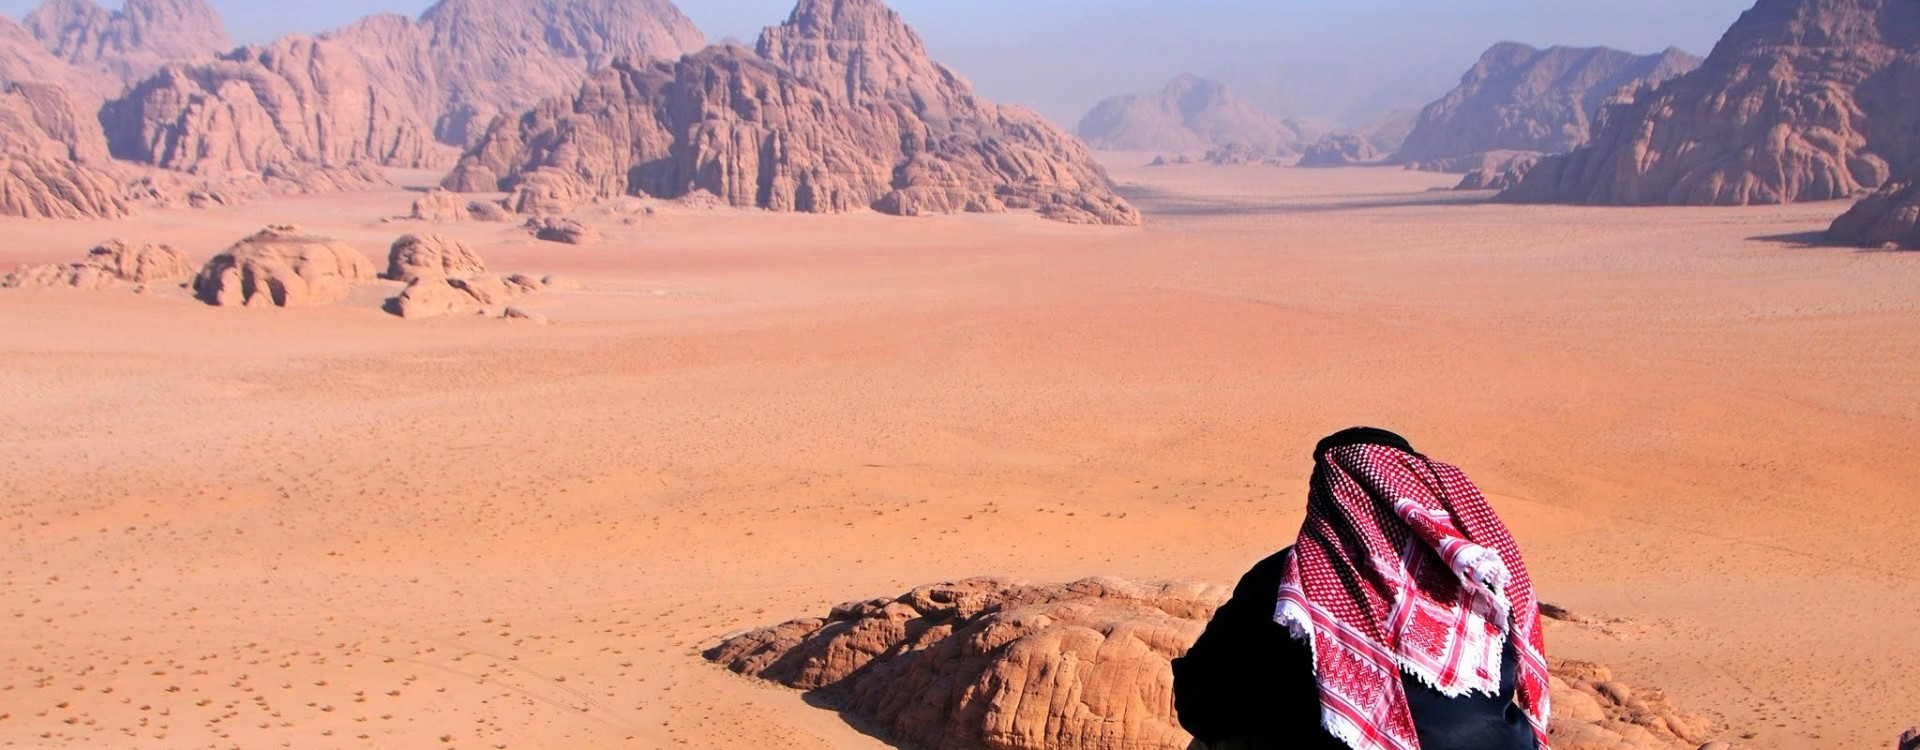 Enjoying the stunning views, Wadi Rum